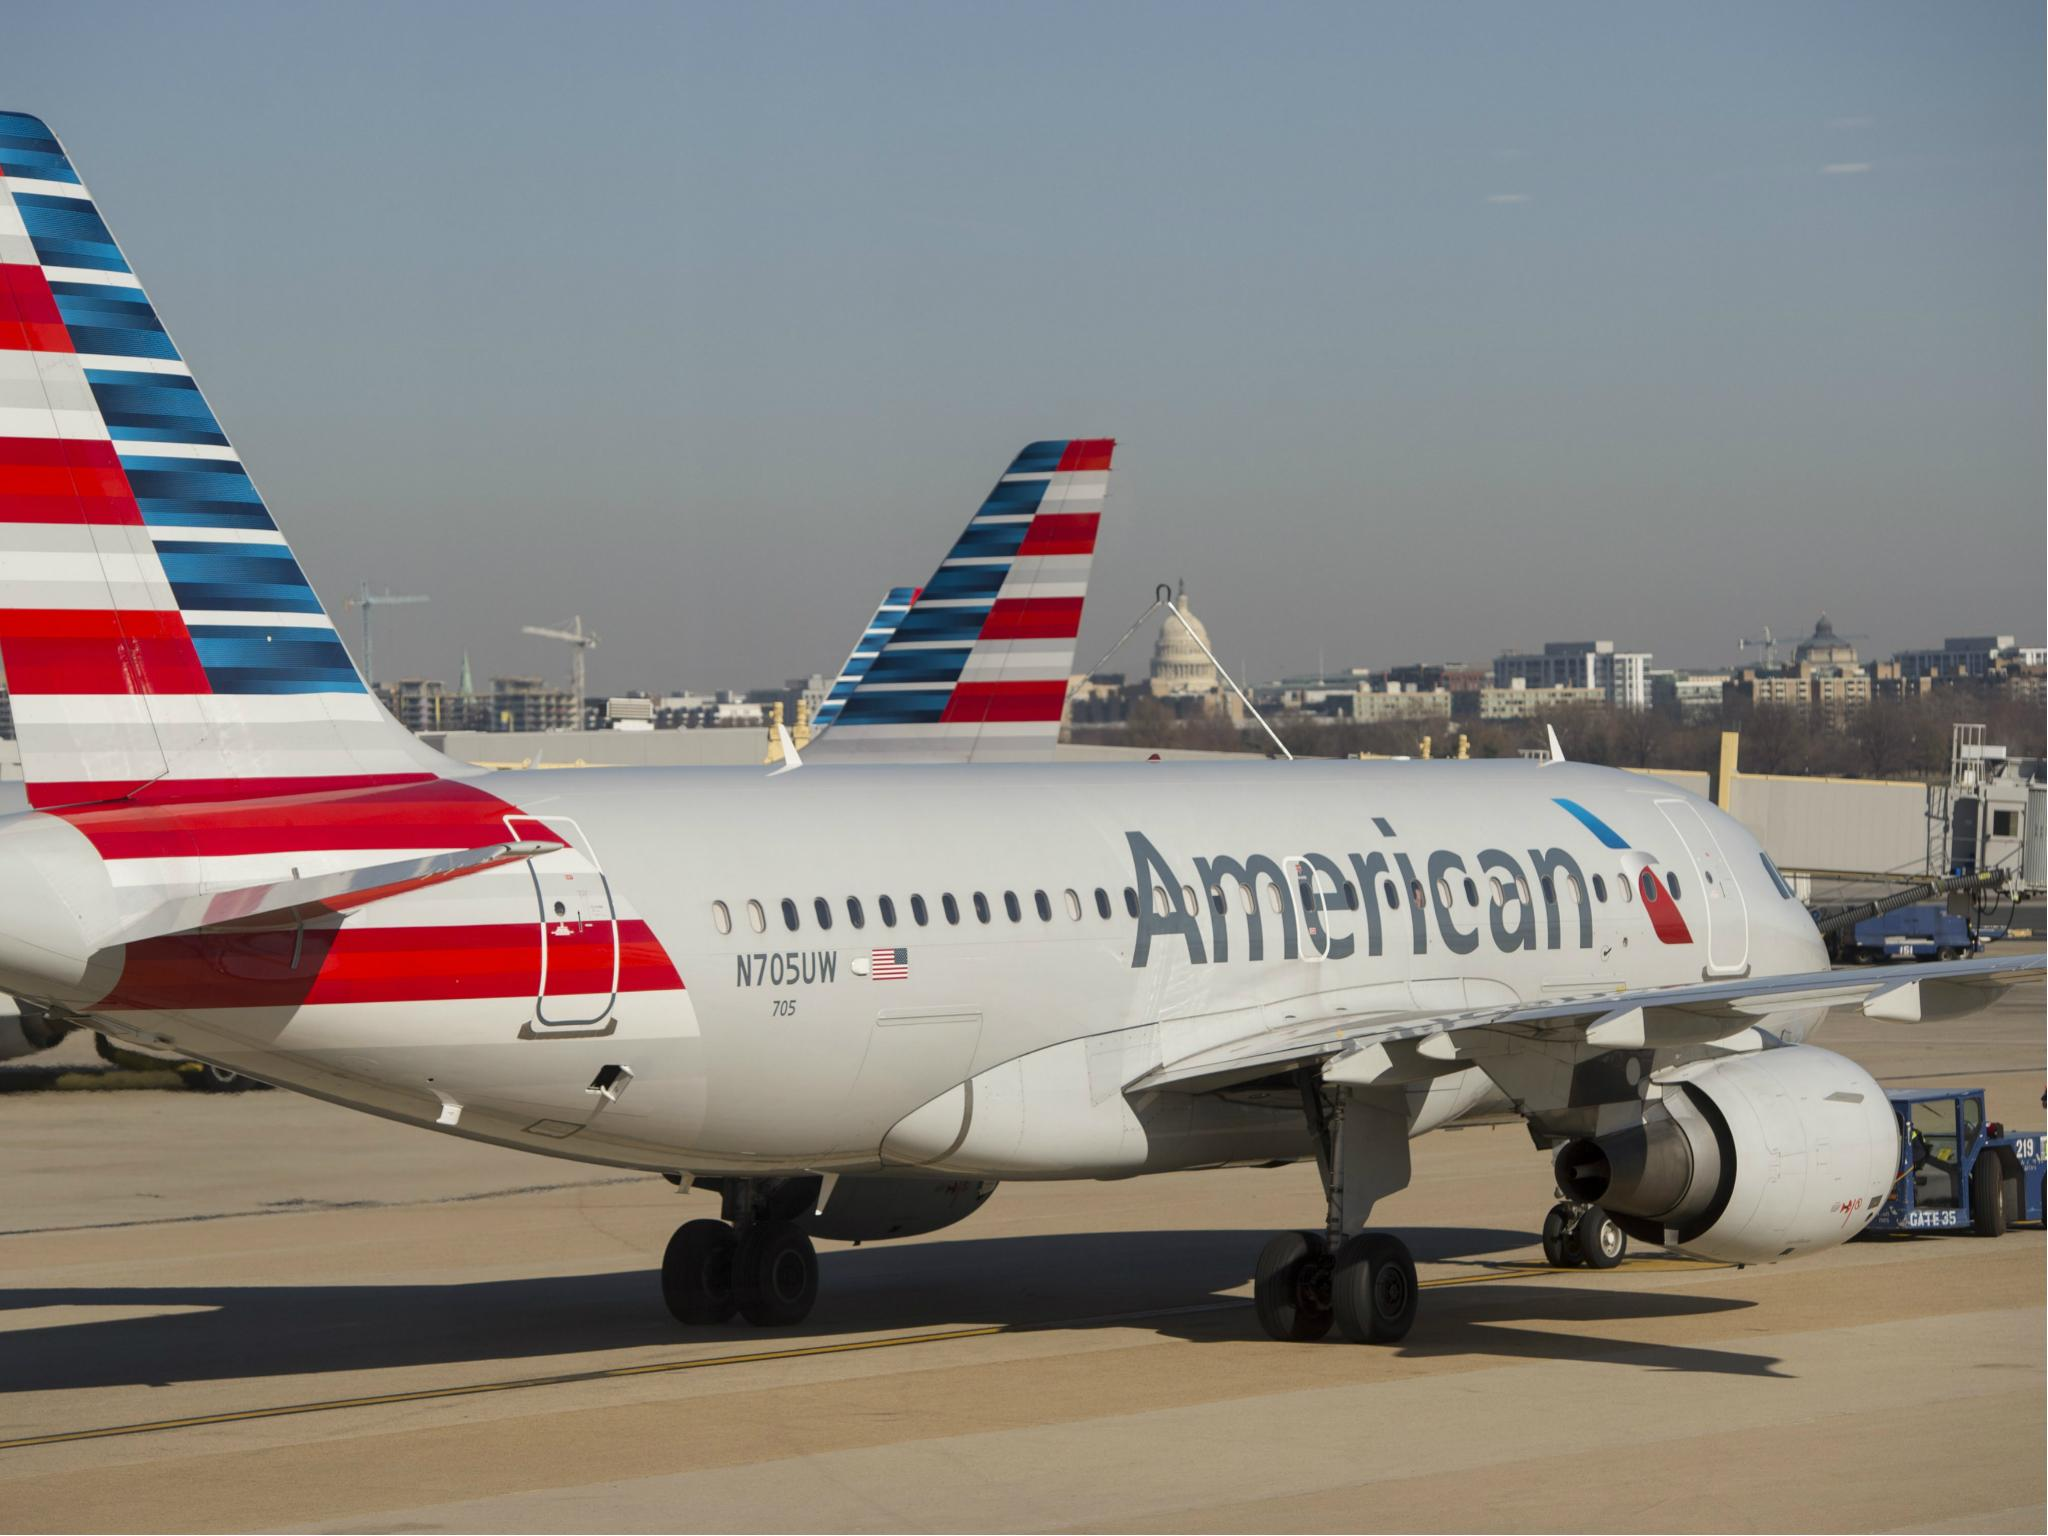 Black People Warned Against Travelling With American